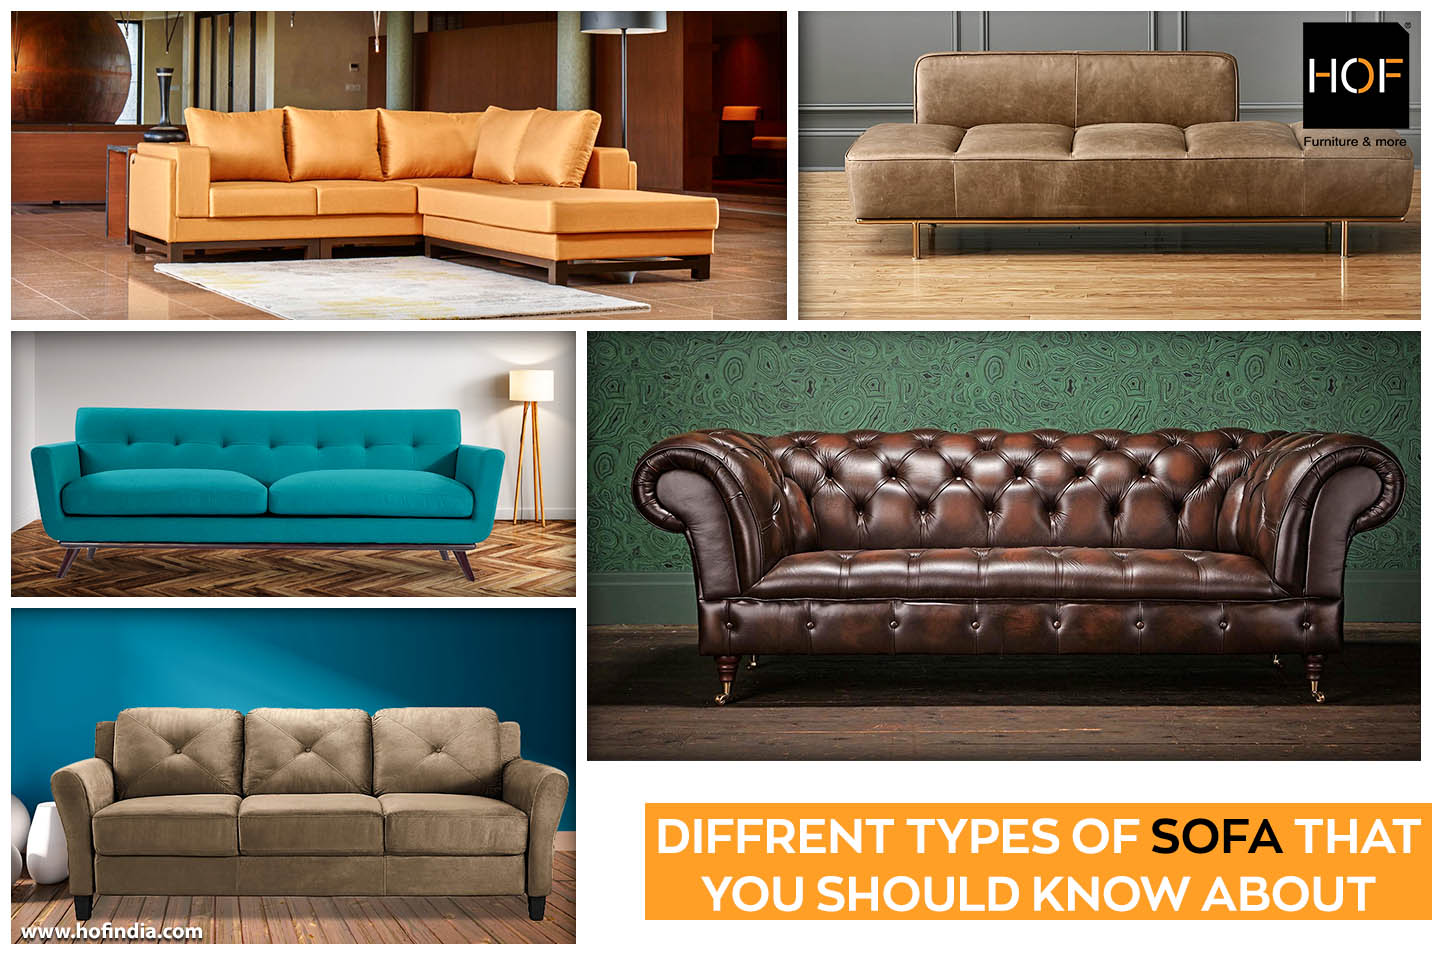 5 Types Of Sofa That You Should Know About Hof India